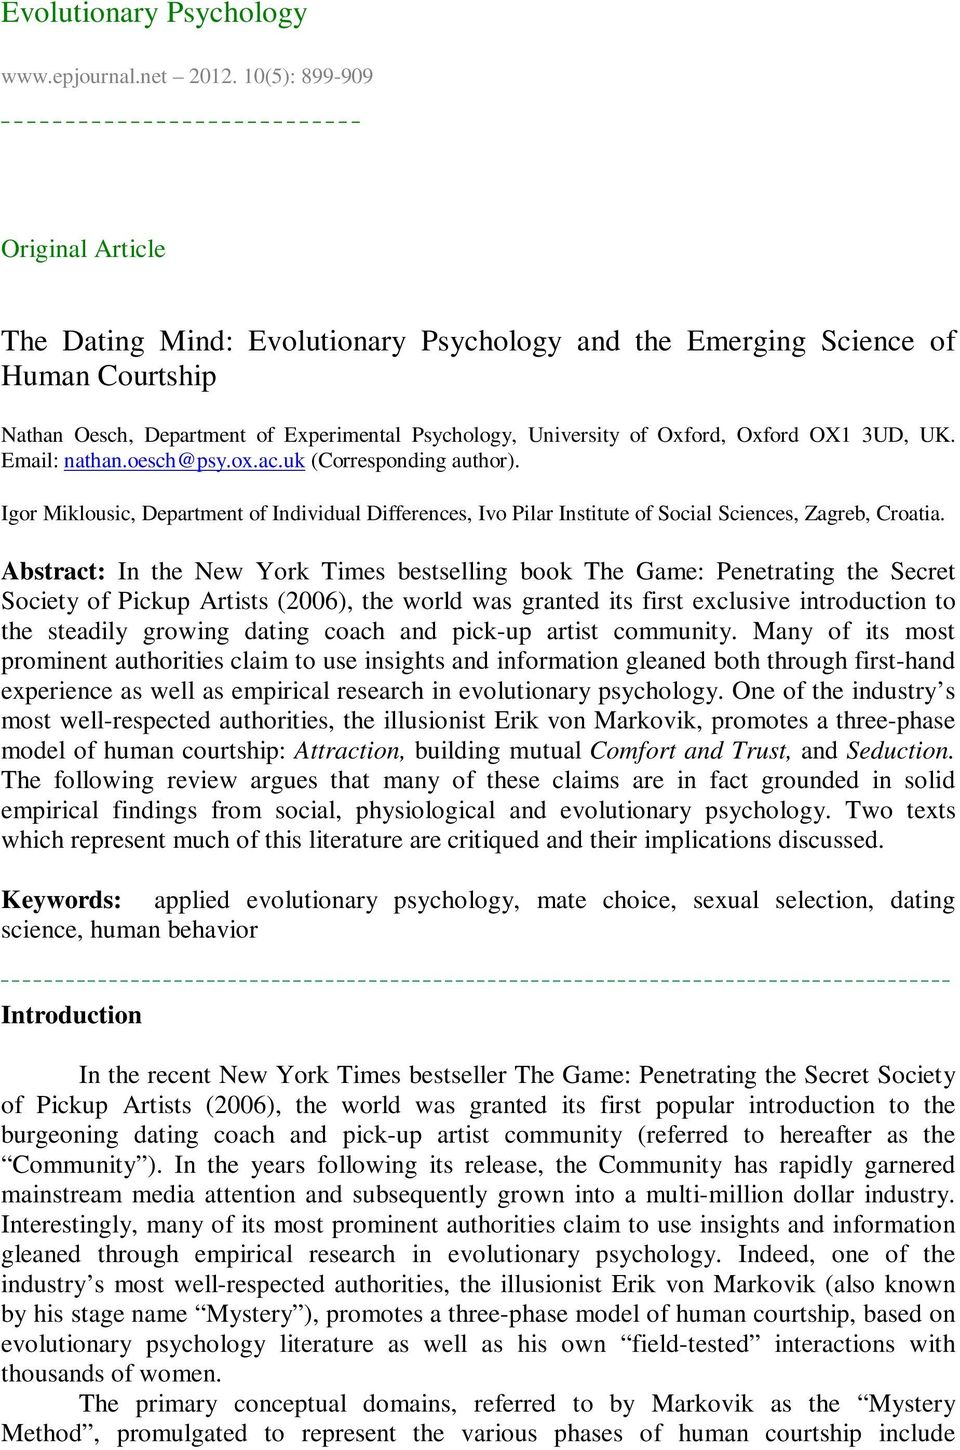 the dating mind evolutionary psychology and the emerging science of human courtship